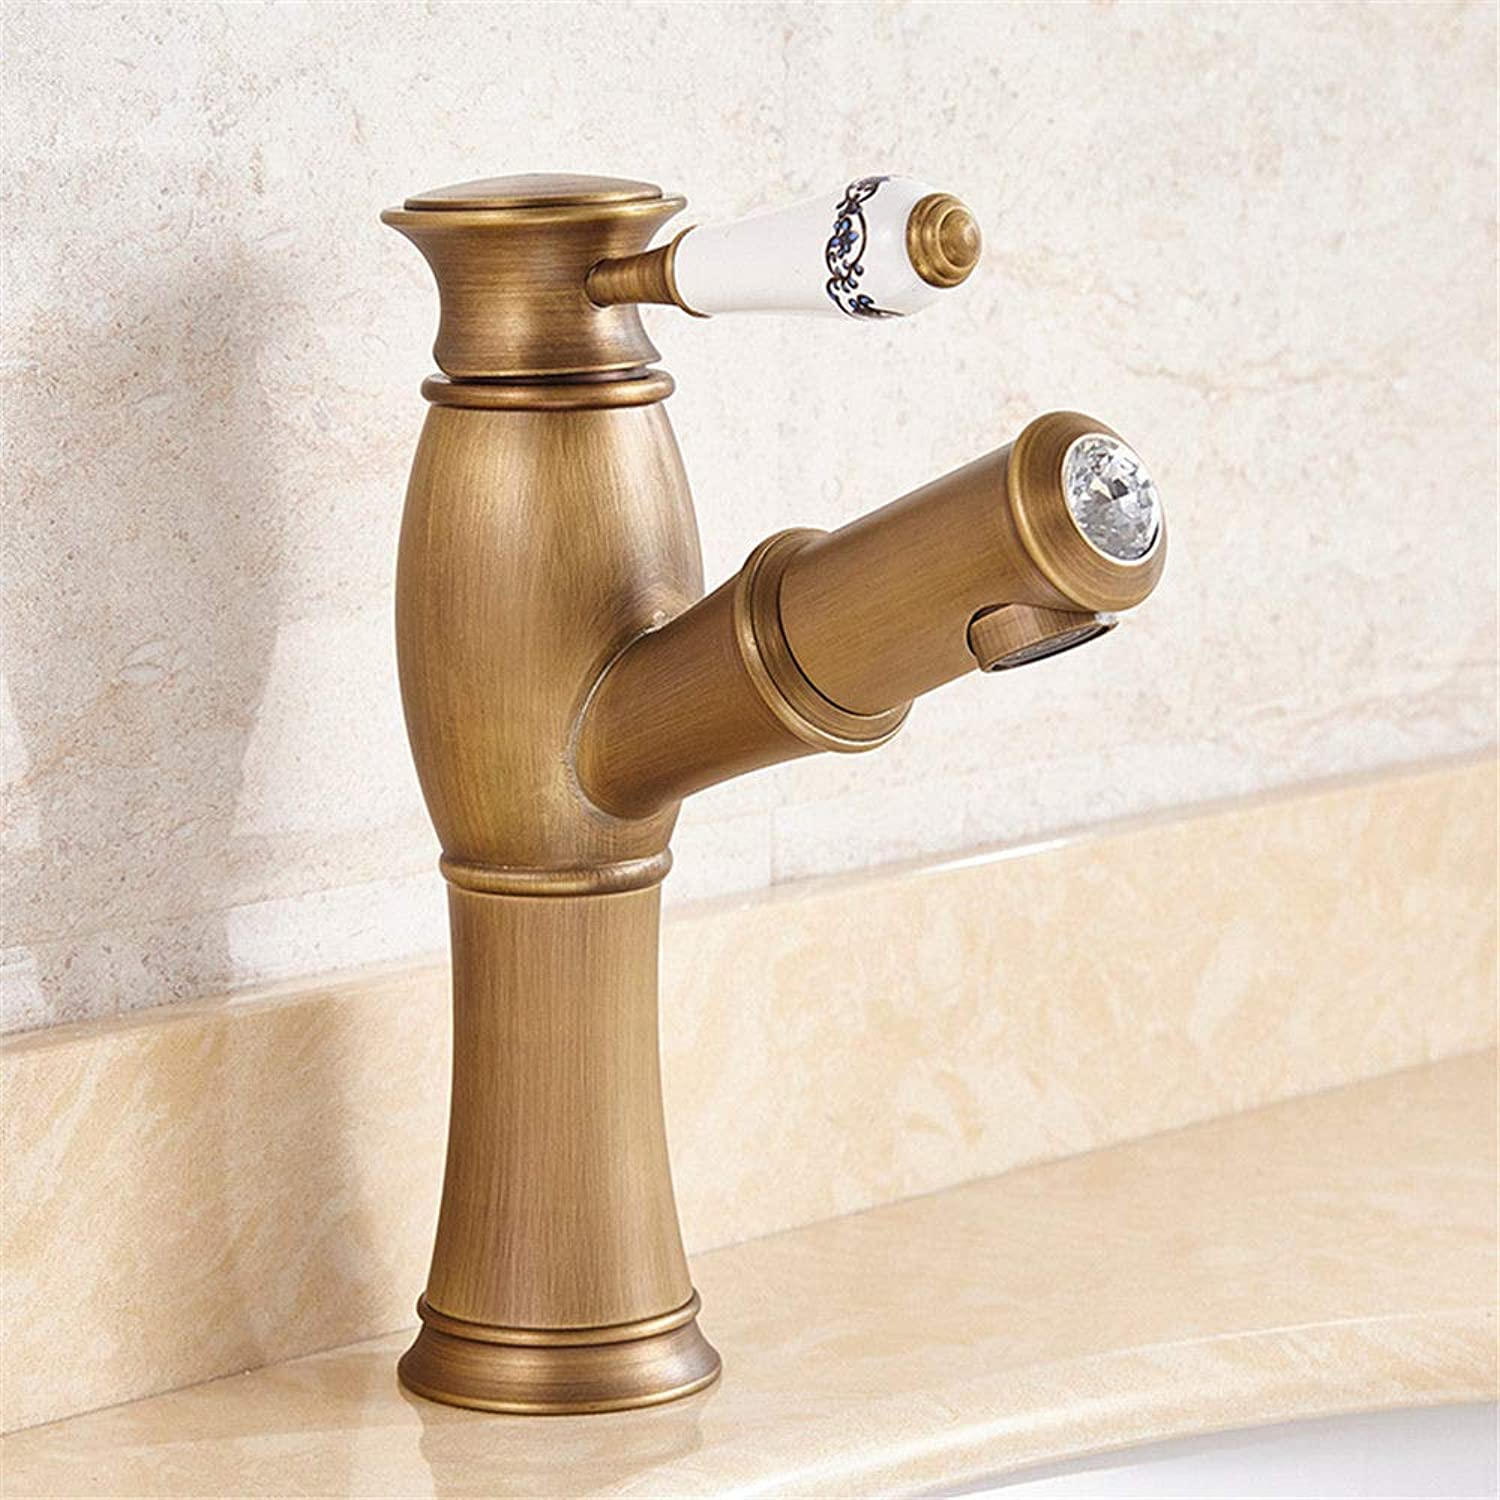 Hlluya Professional Sink Mixer Tap Kitchen Faucet A full-scale bronze basin mixer single hole on the basin of cold and hot antique pull taps, B